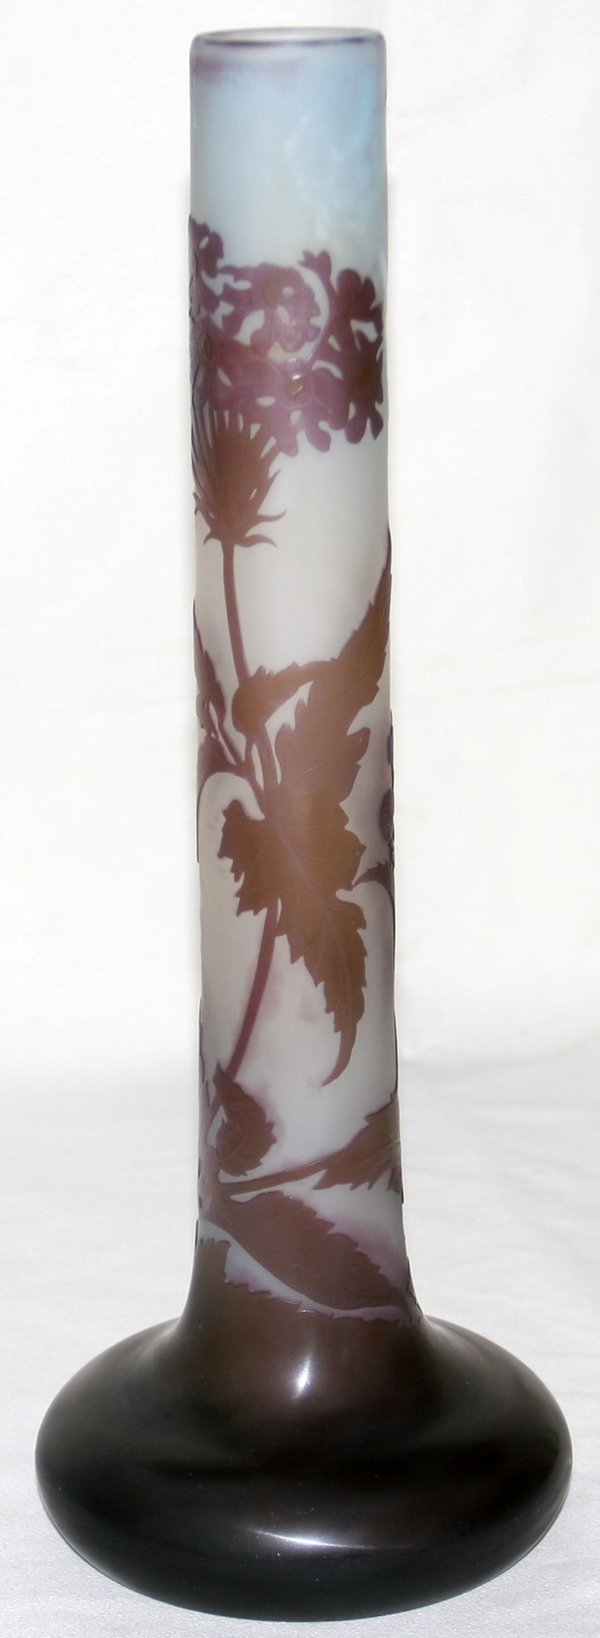 111004: GALLE CARVED CAMEO GLASS VASE, H13.5""